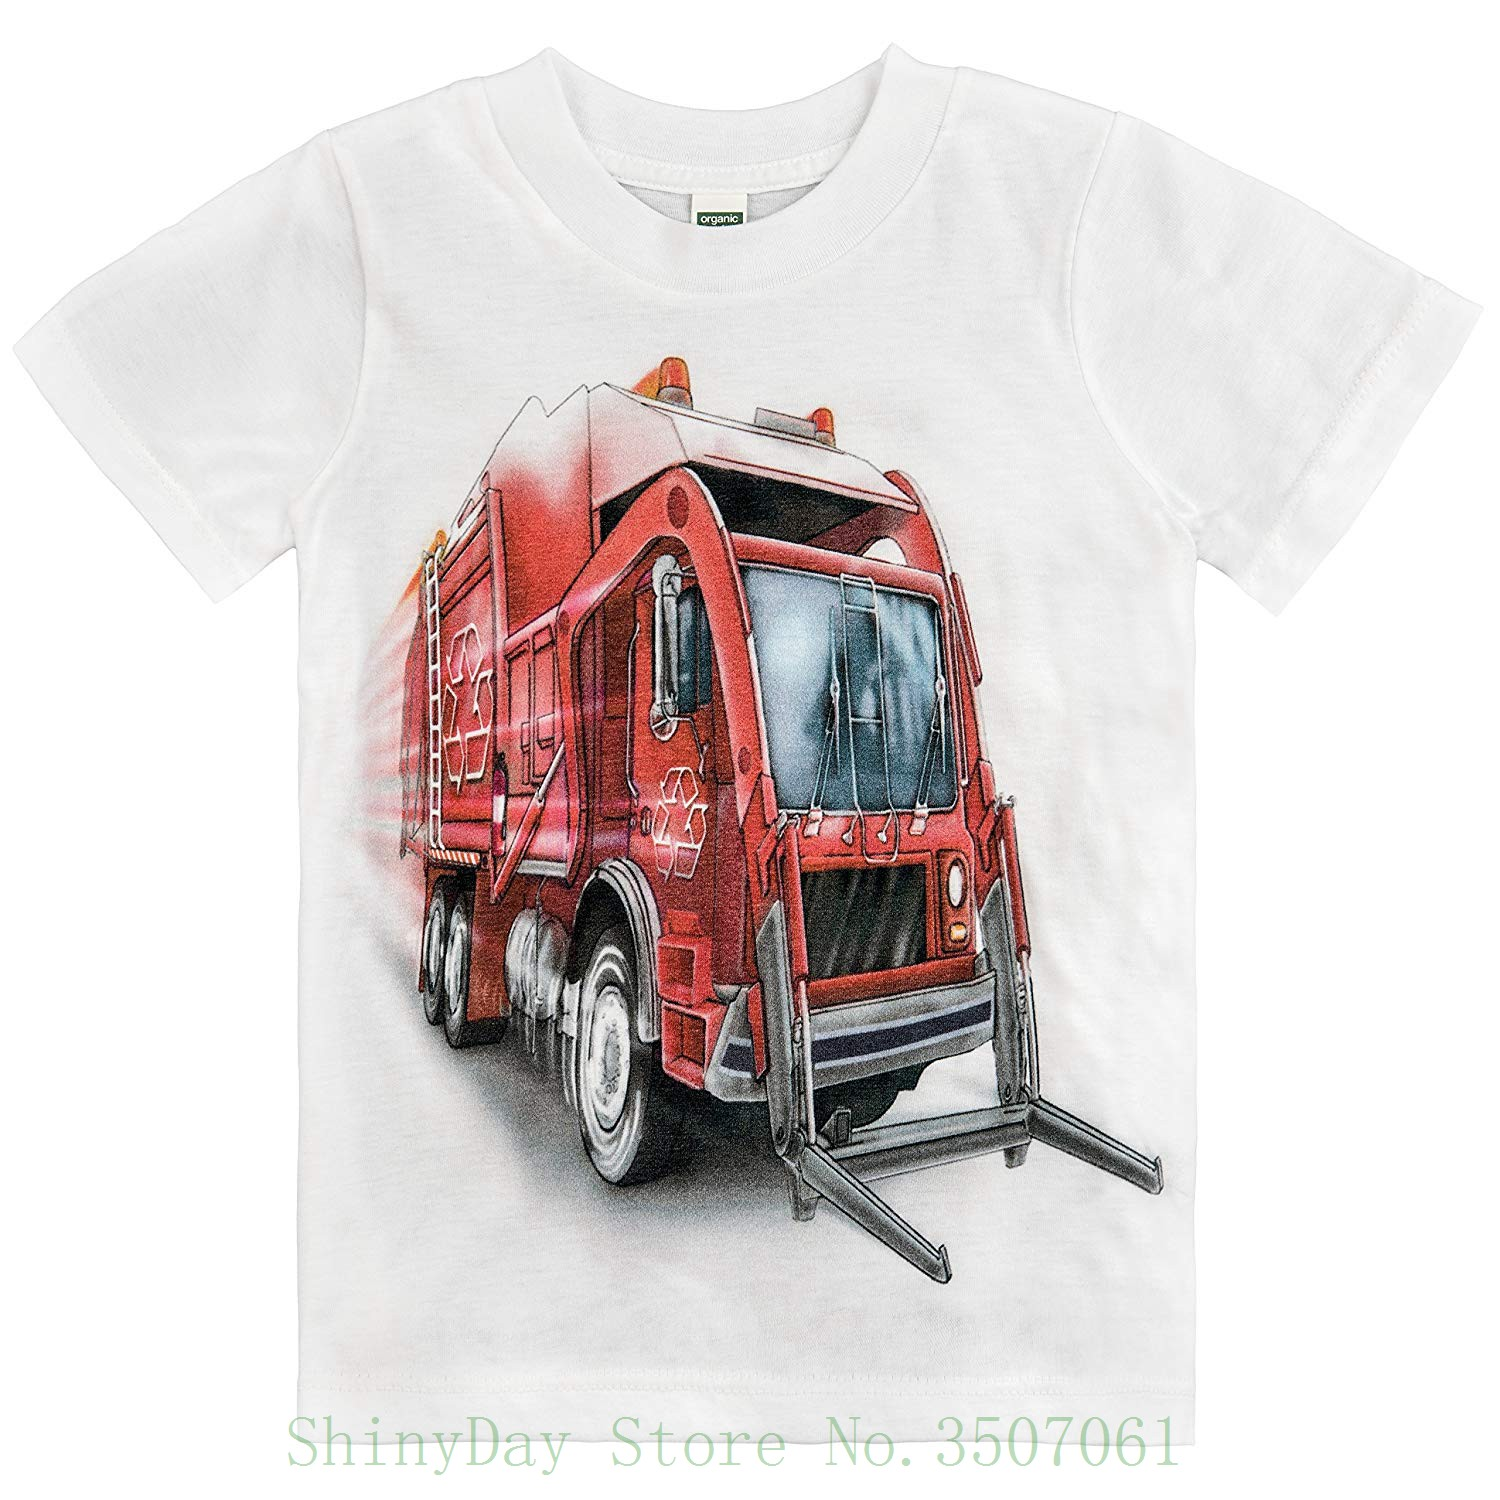 Big Red Store >> Us 12 91 7 Off Little Boys Big Red Garbage Truck T Shirt High Quality Custom Printed Tops Hipster Tees T Shirt In T Shirts From Men S Clothing On